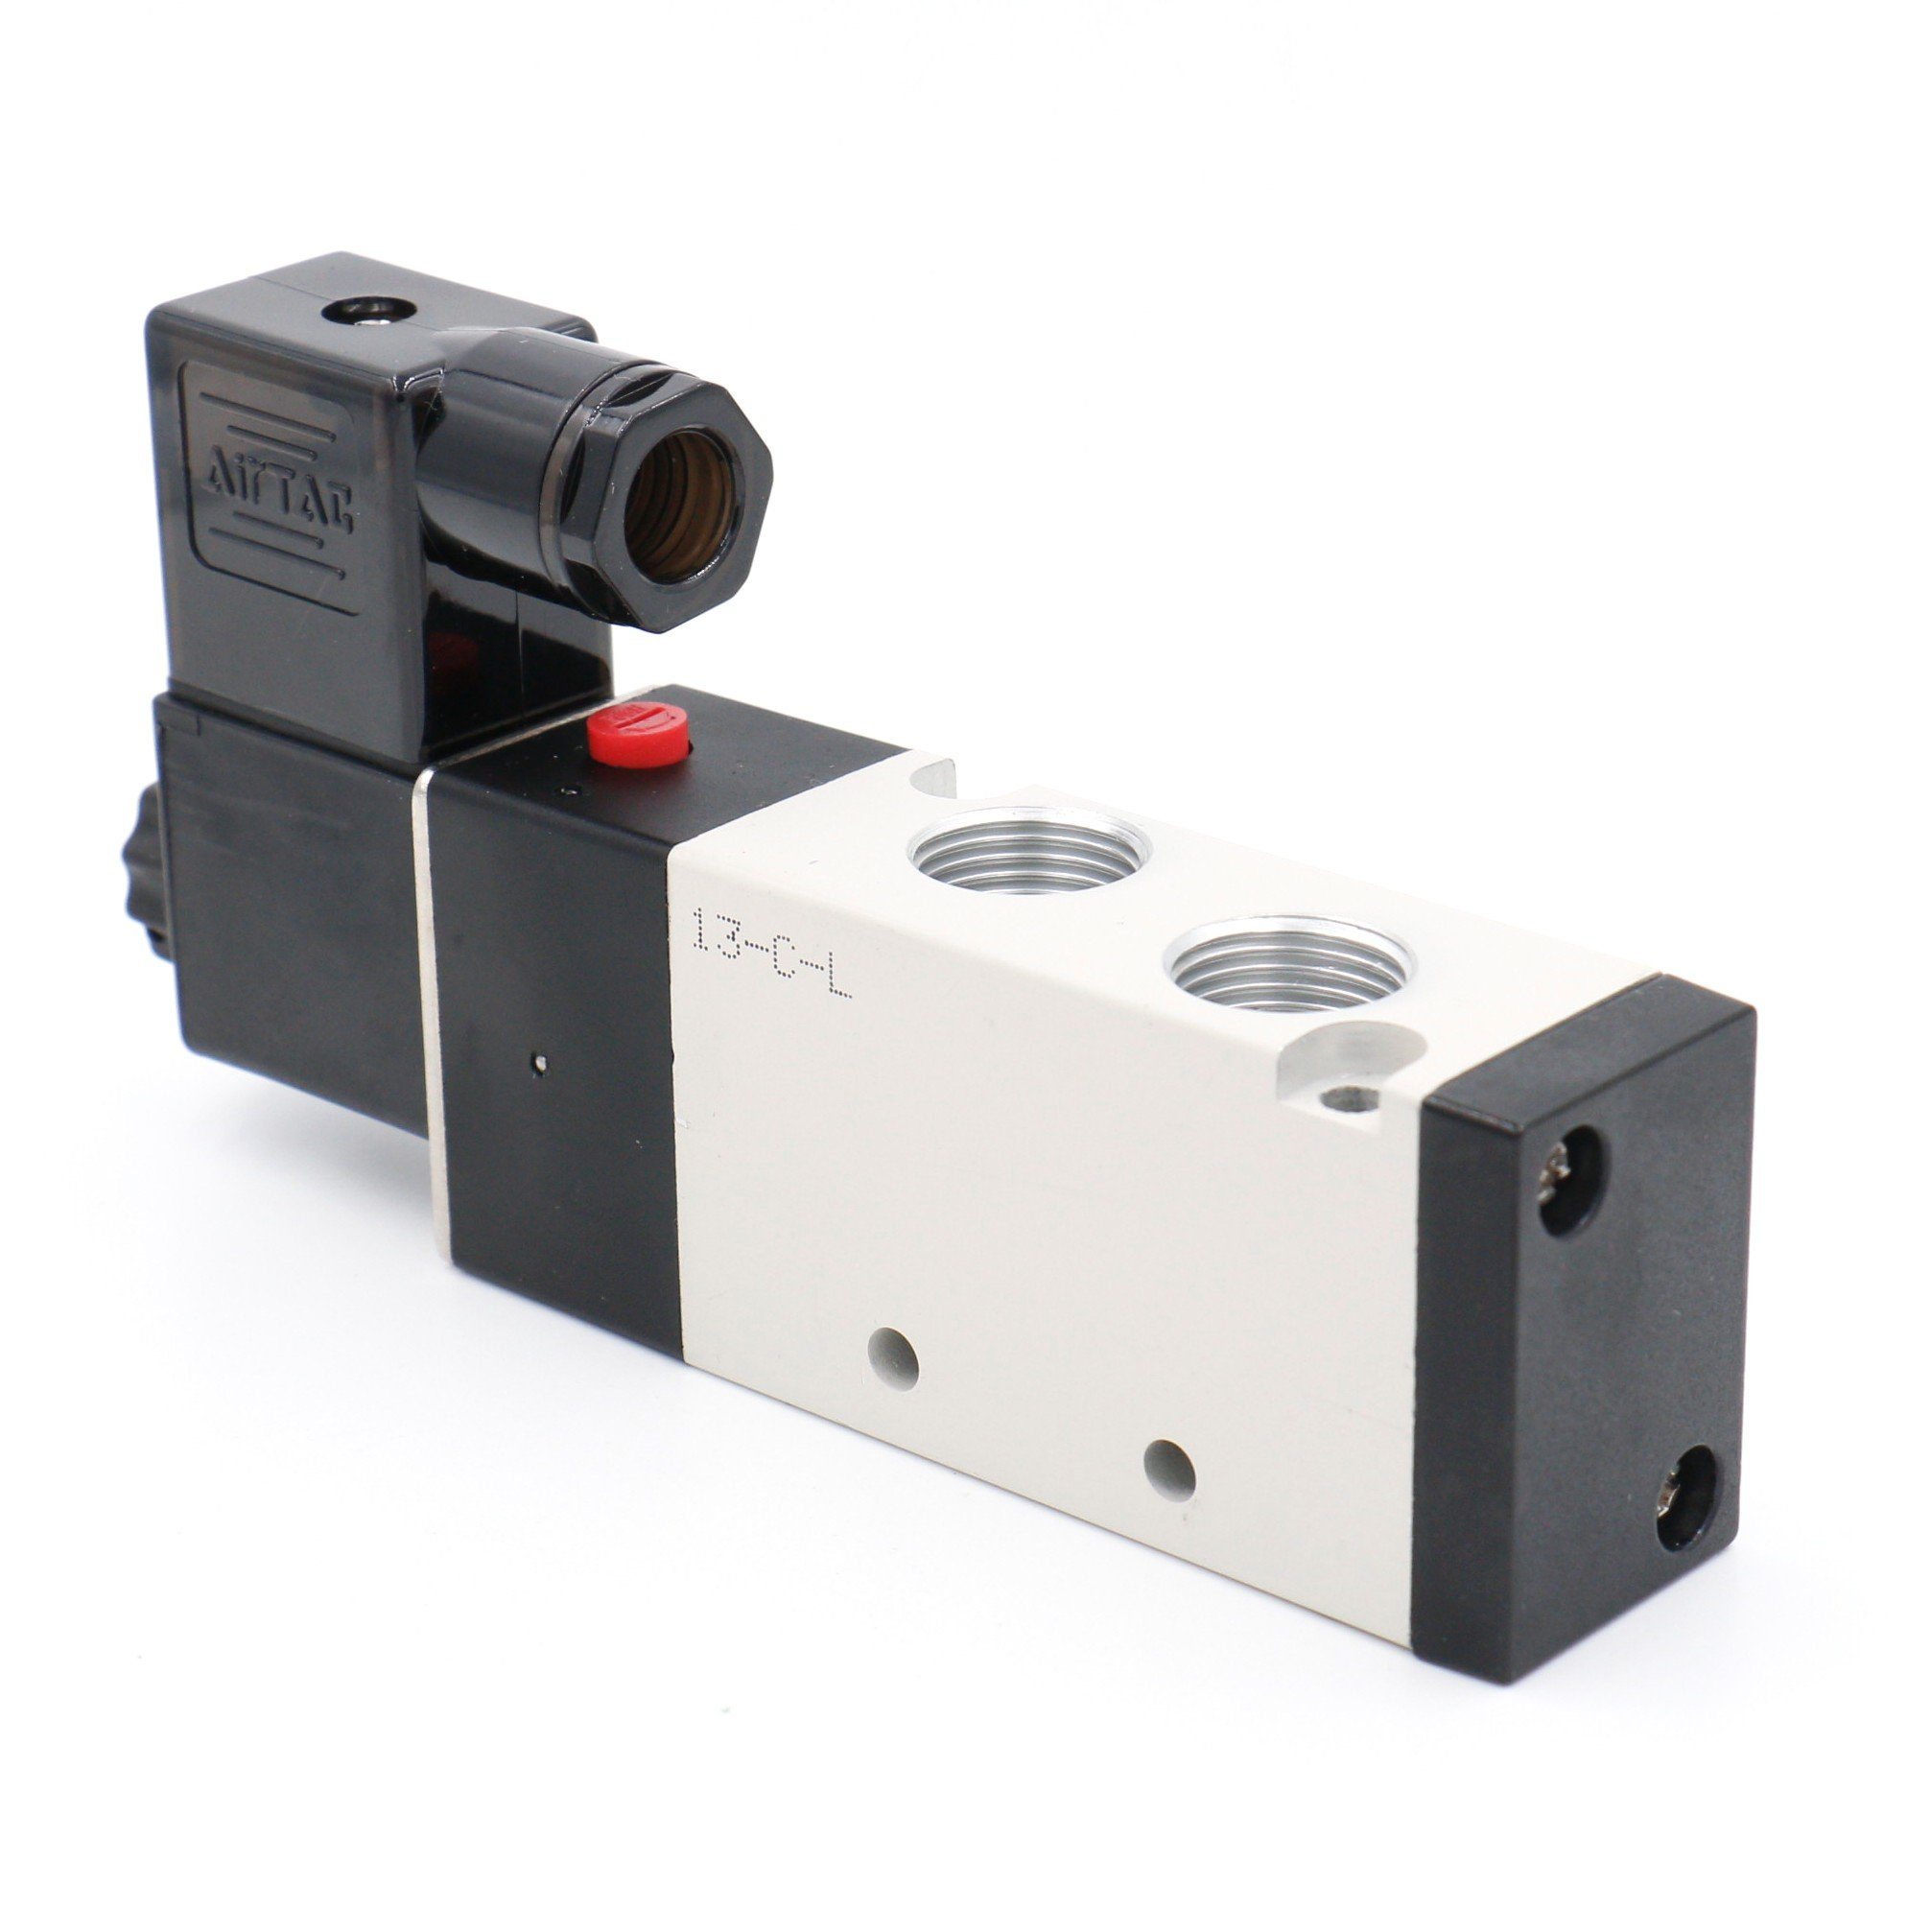 Baomain Pneumatic Solenoid Air Valve 4V310-10 AC110V 5 Way 2 Position PT3//8 Internally Piloted Acting Type Single Electrical Control AirTac 4V310-10-110VAC